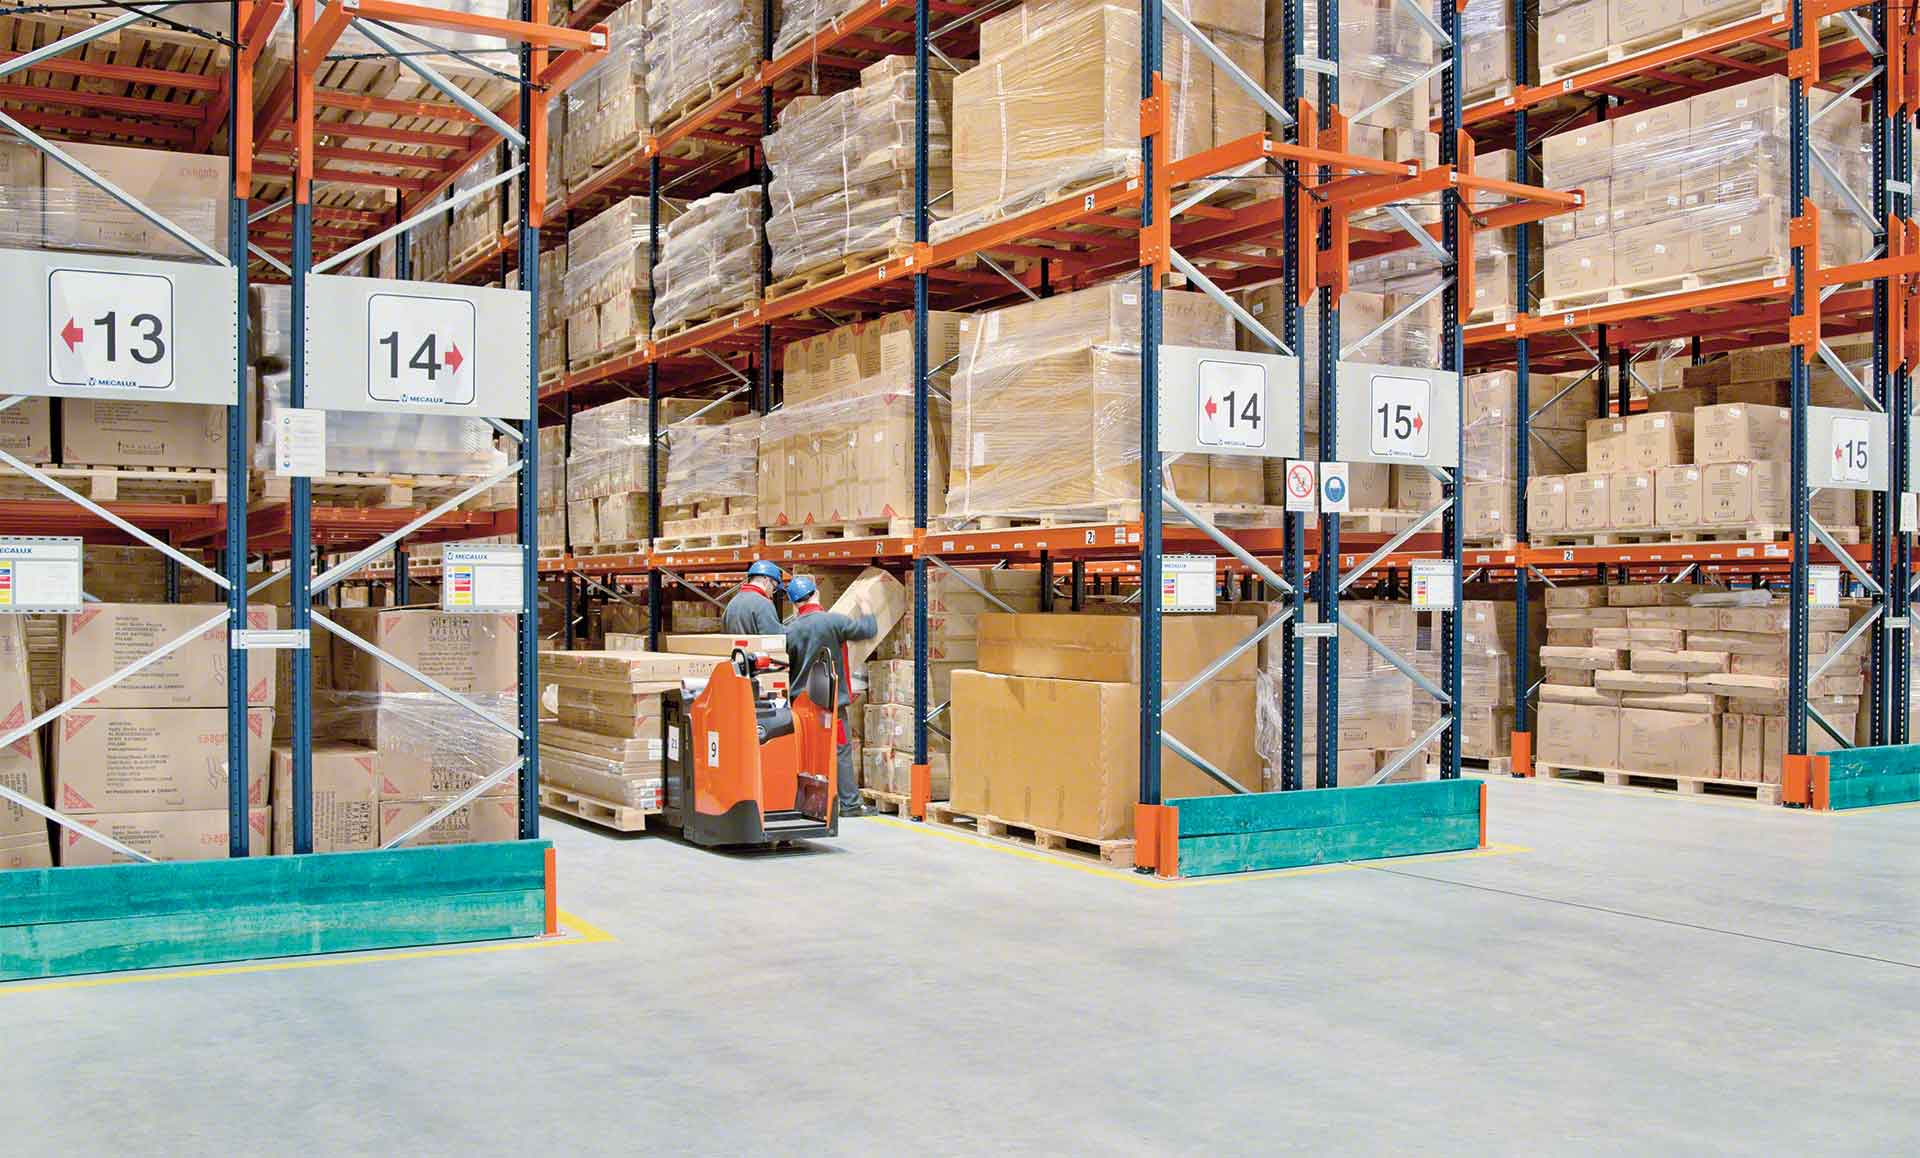 Warehouse operators checking the location of a pallet